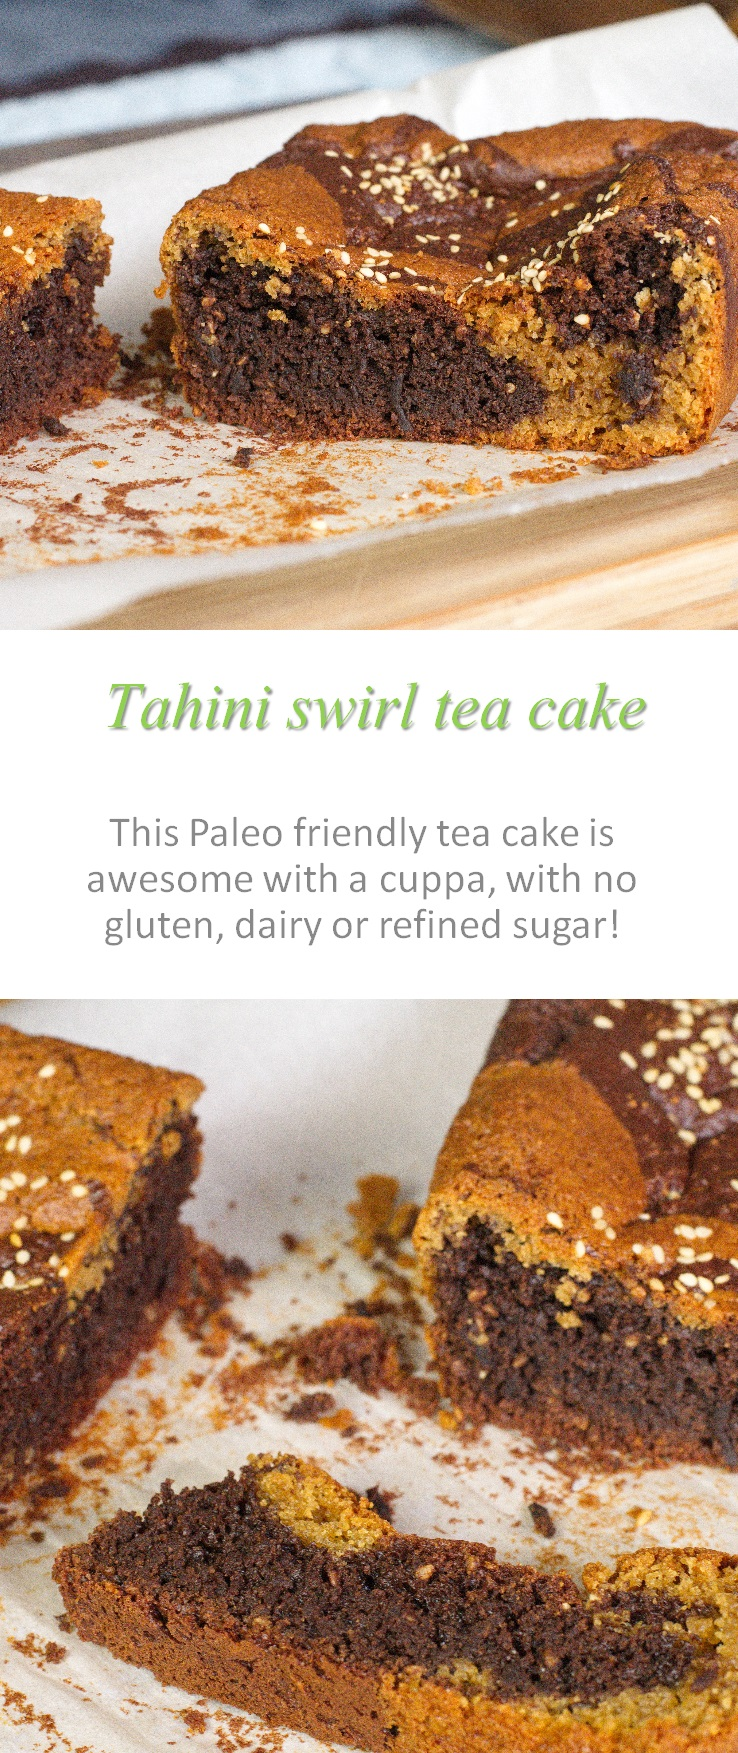 A nutty, seedy taste for this tahini swirl tea cake - the perfect accompaniment to any cuppa, hot or cold! #tahini #teacake #paleo #cookathome #glutenfree #dairyfree